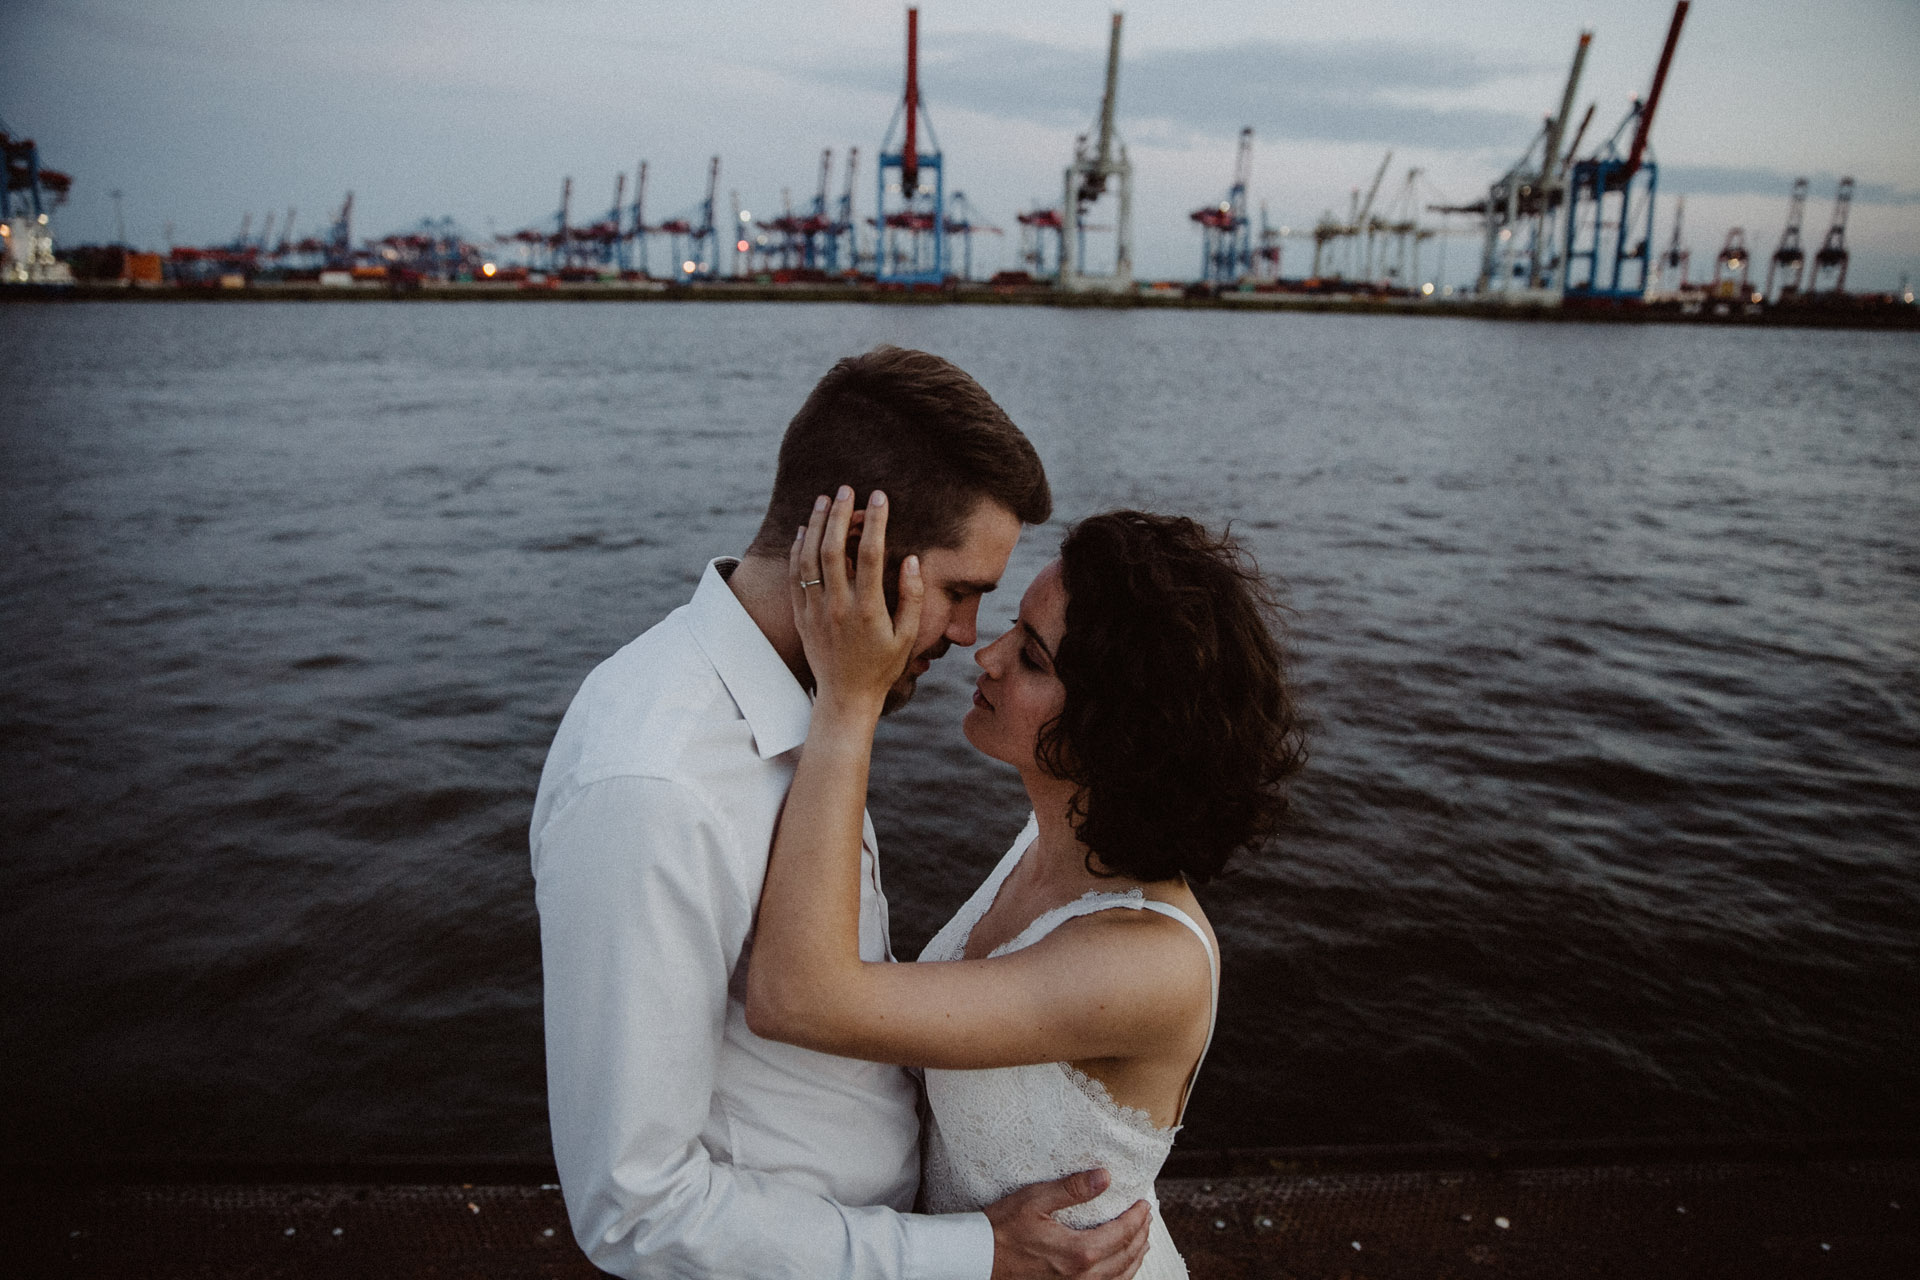 hamburg-wedding-photographer-182